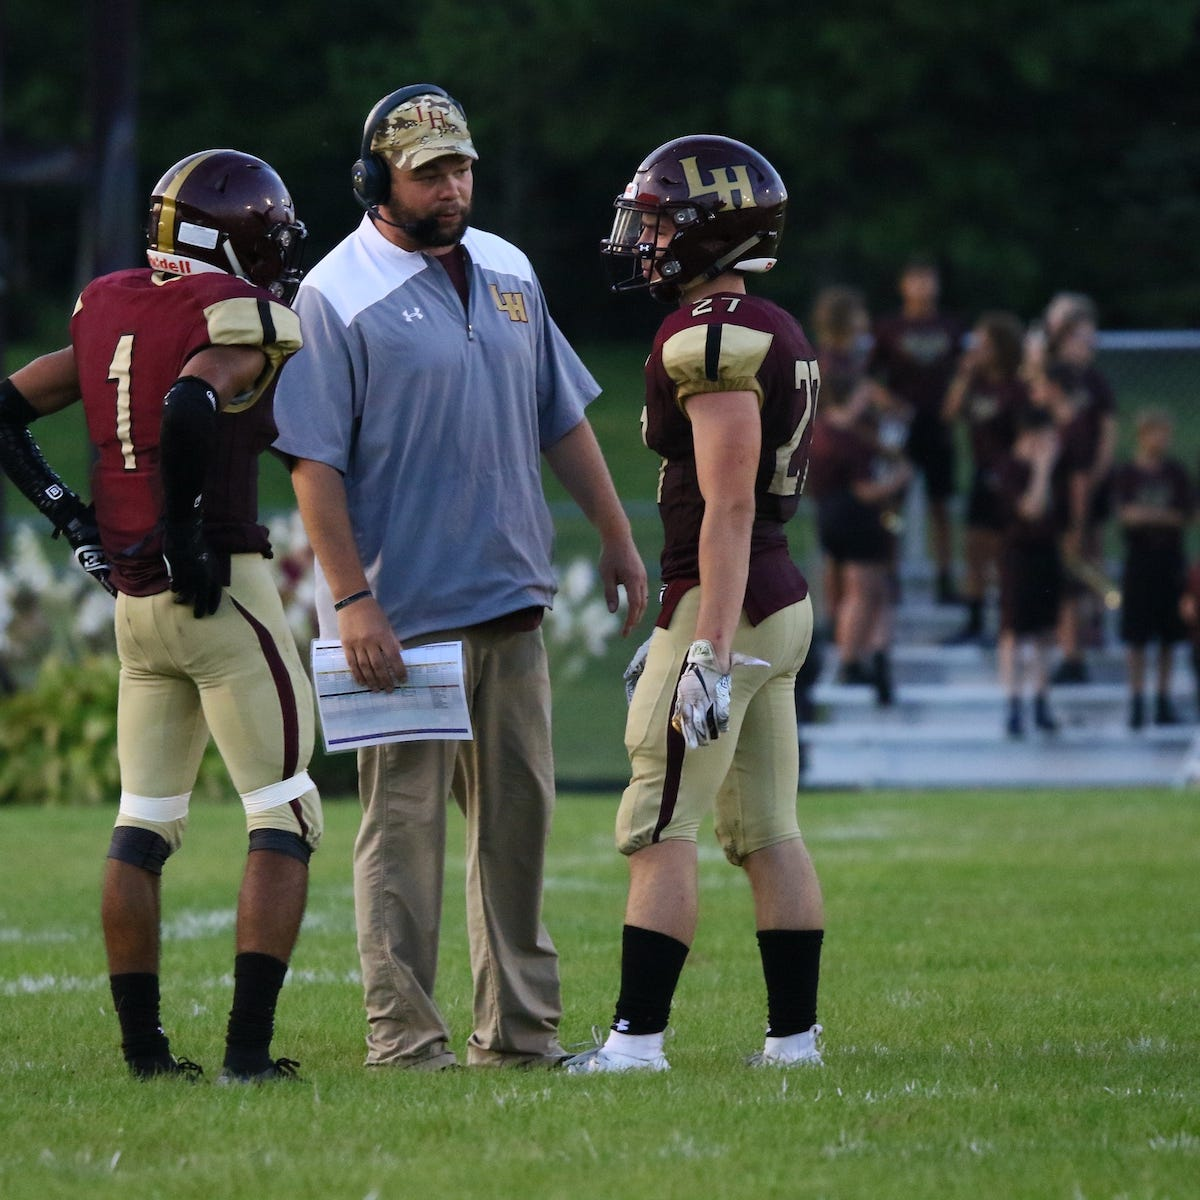 Waaland to be named Licking Heights football coach